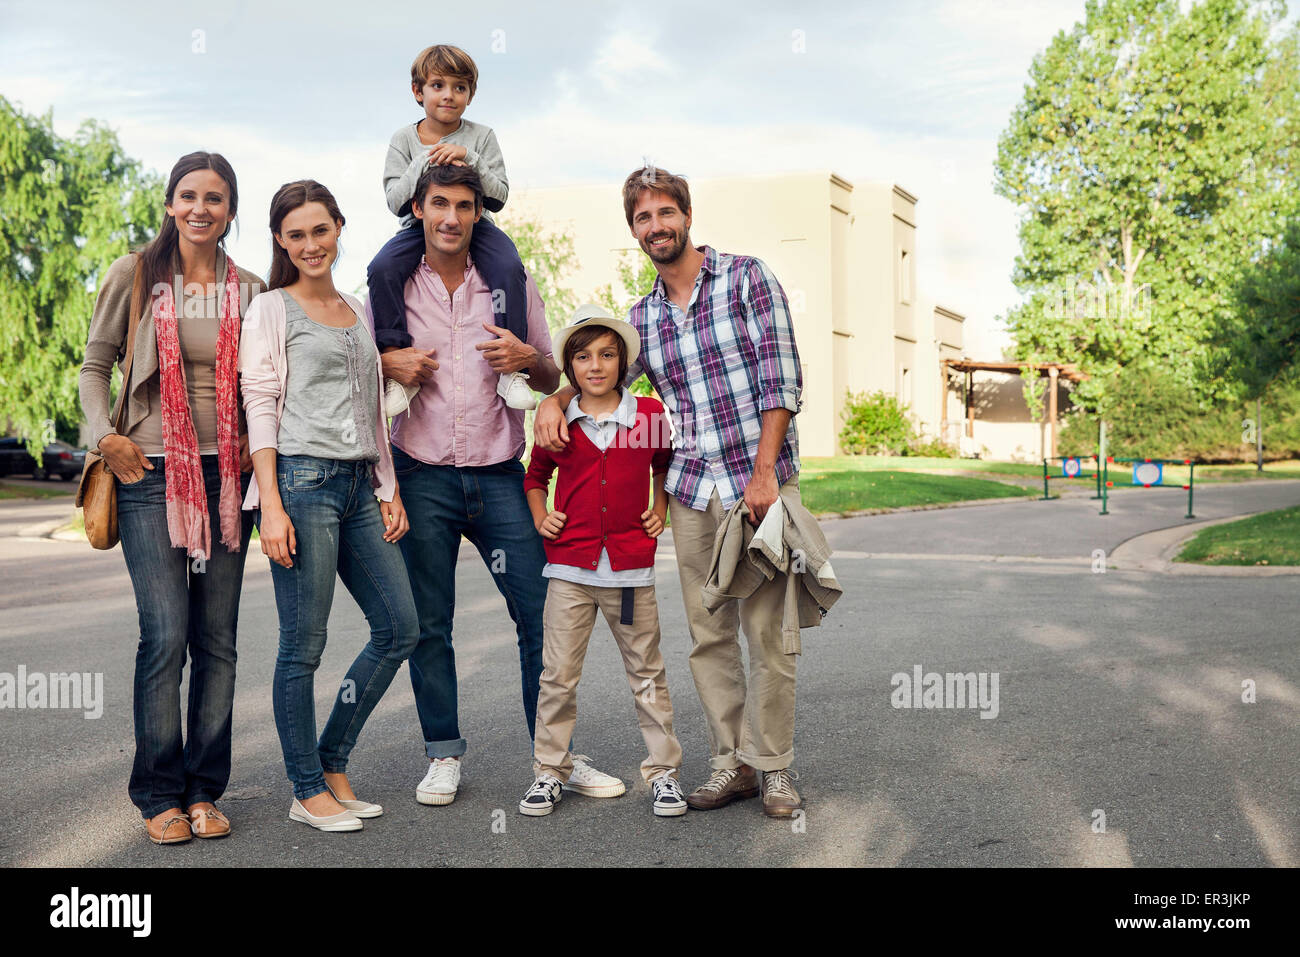 Family posing for group portrait outdoors Stock Photo